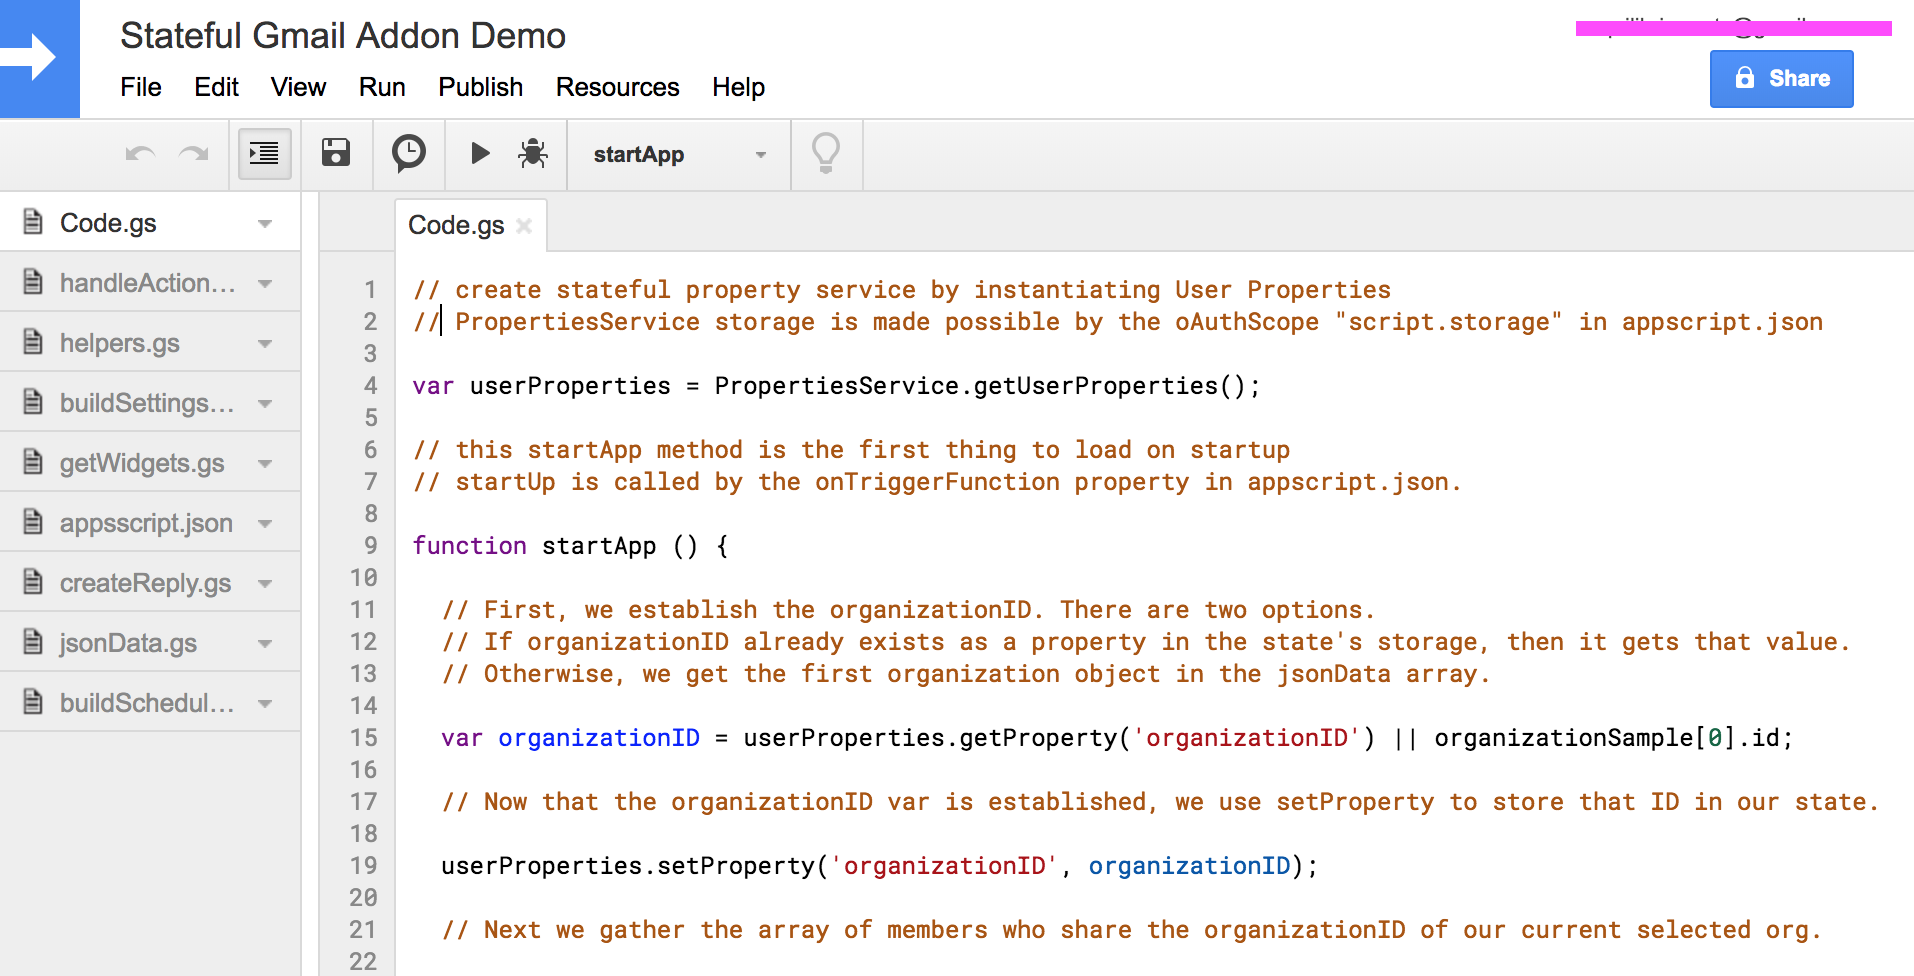 Google Apps Script: Creating Stateful Gmail Add-Ons